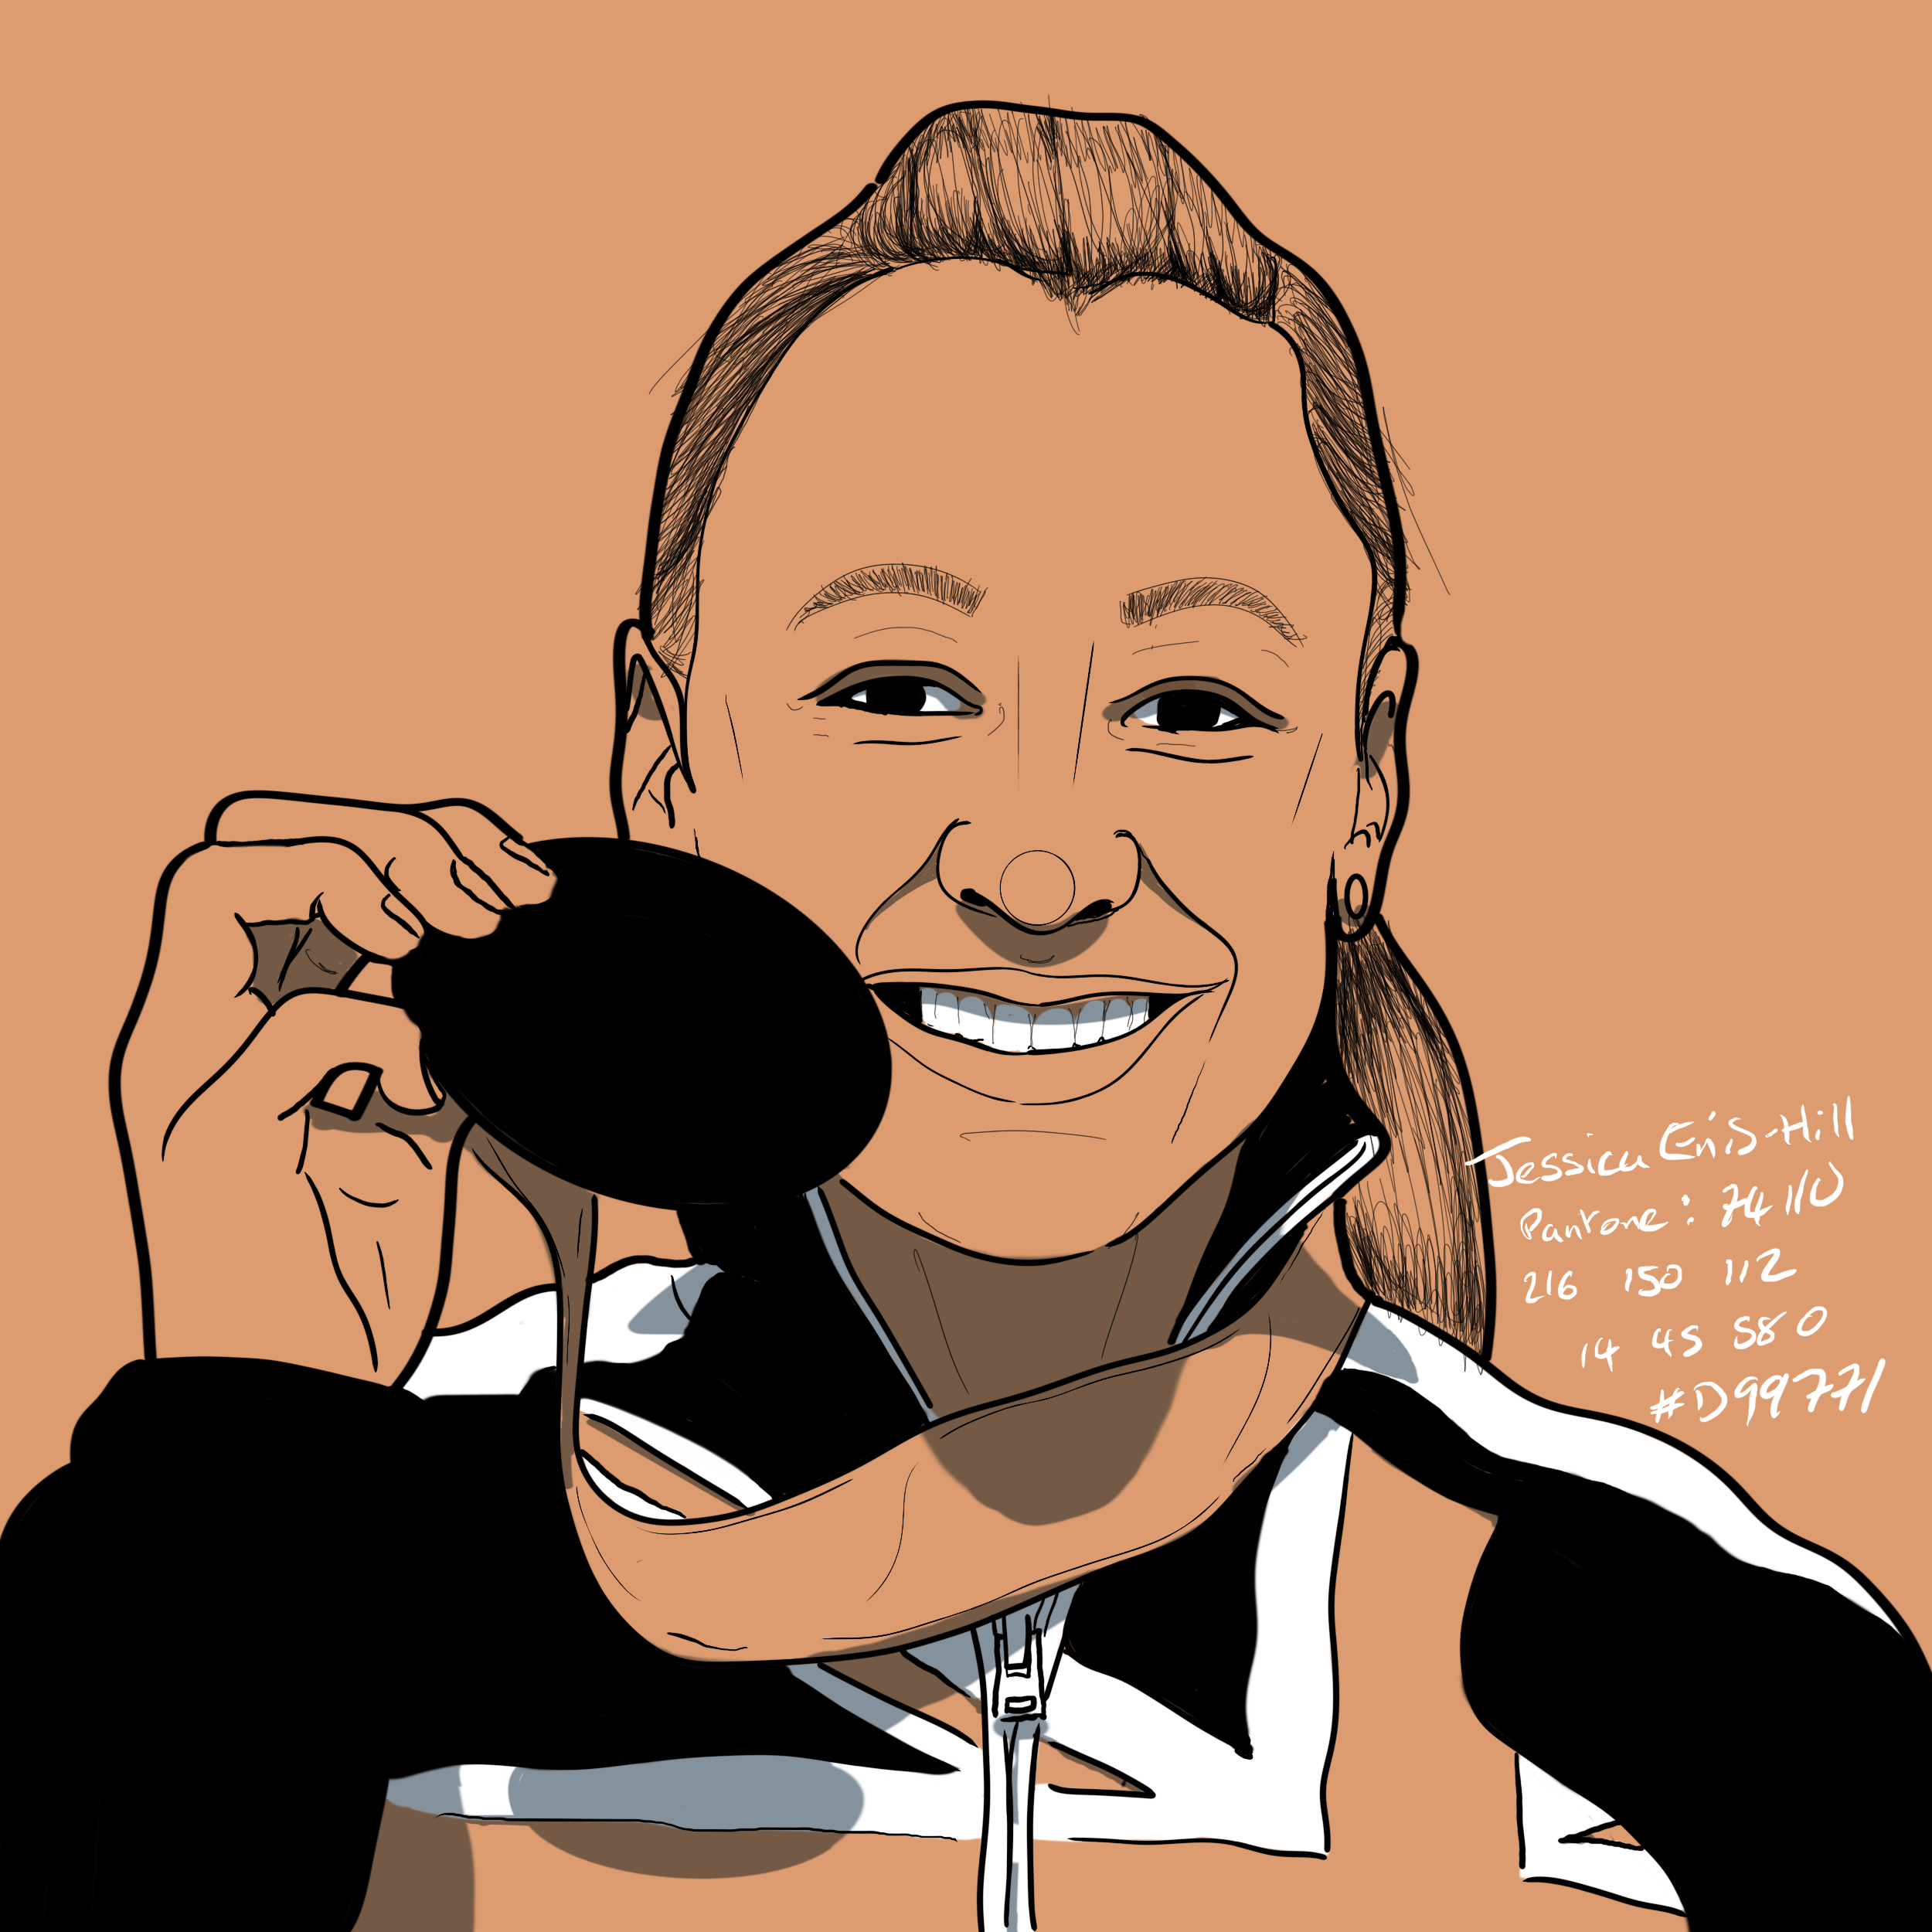 15. Jessica Ennis-Hill 1.png